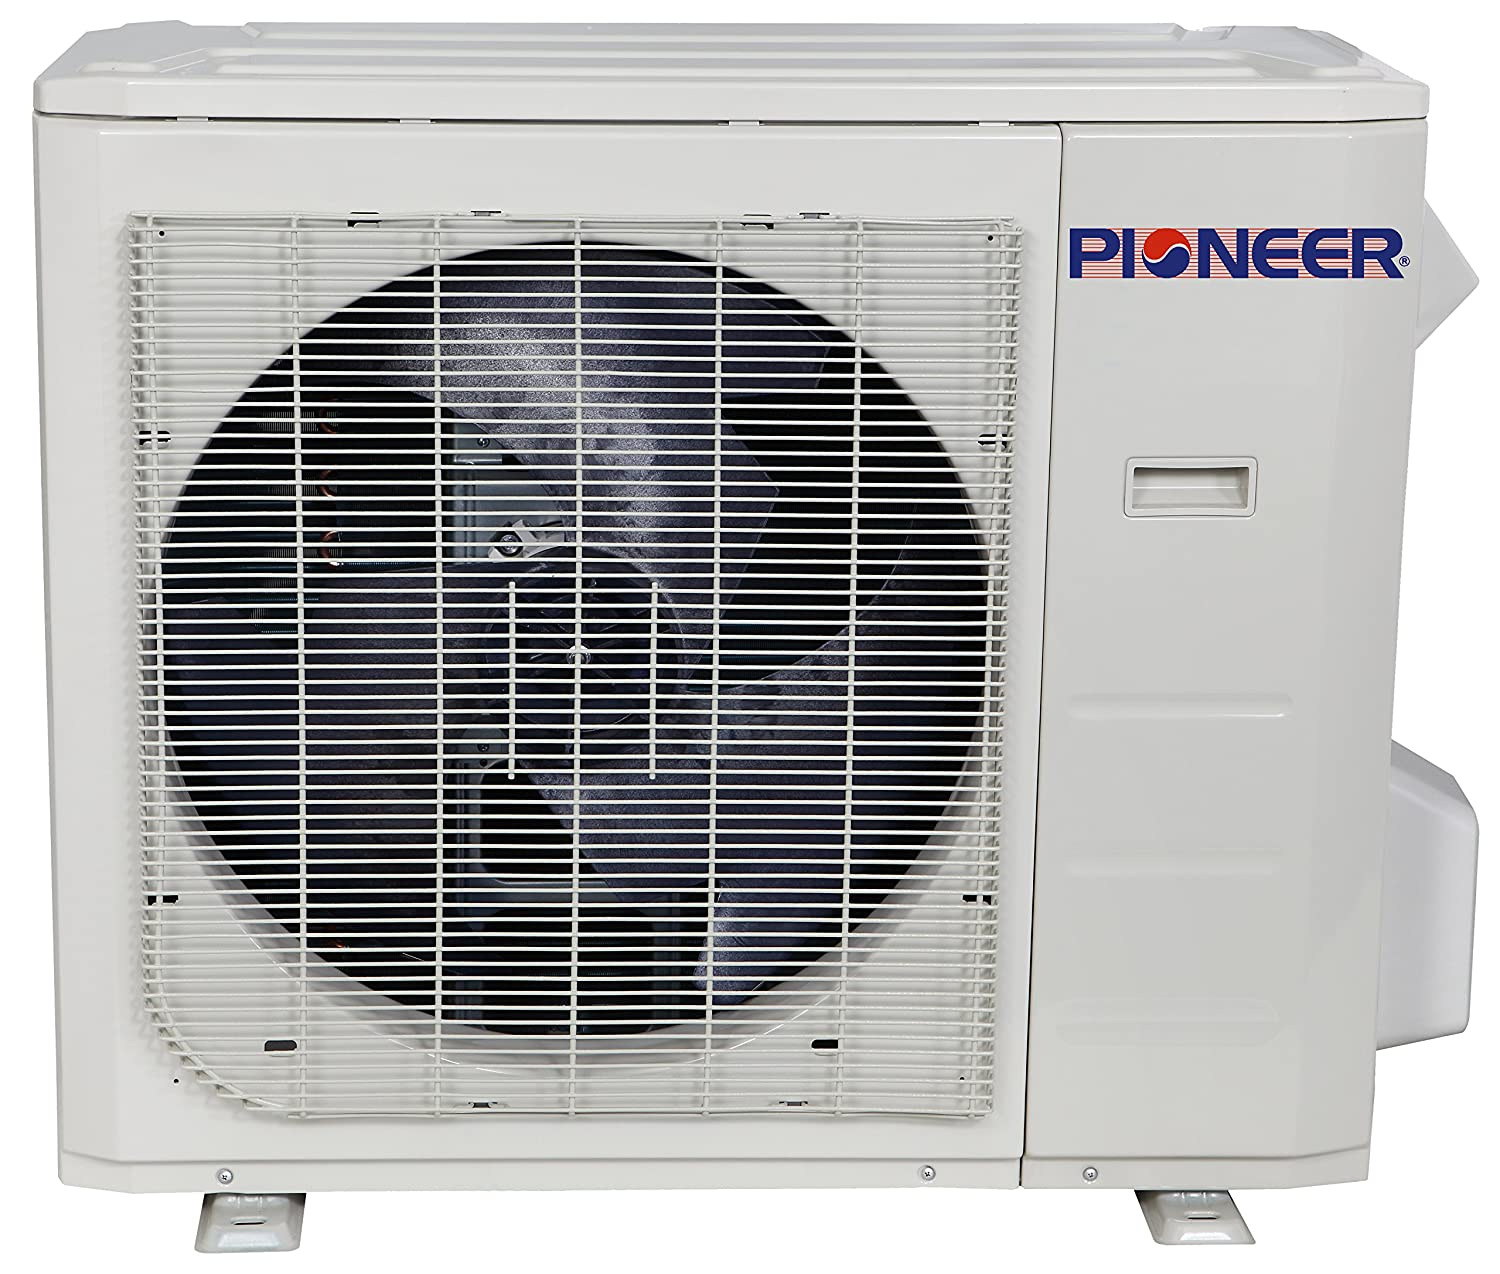 A h heating air conditioning service - Amazon Com Pioneer Air Conditioner Inverter Ductless Wall Mount Mini Split System Air Conditioner Heat Pump Full Set 24000 Btu 230v Home Kitchen